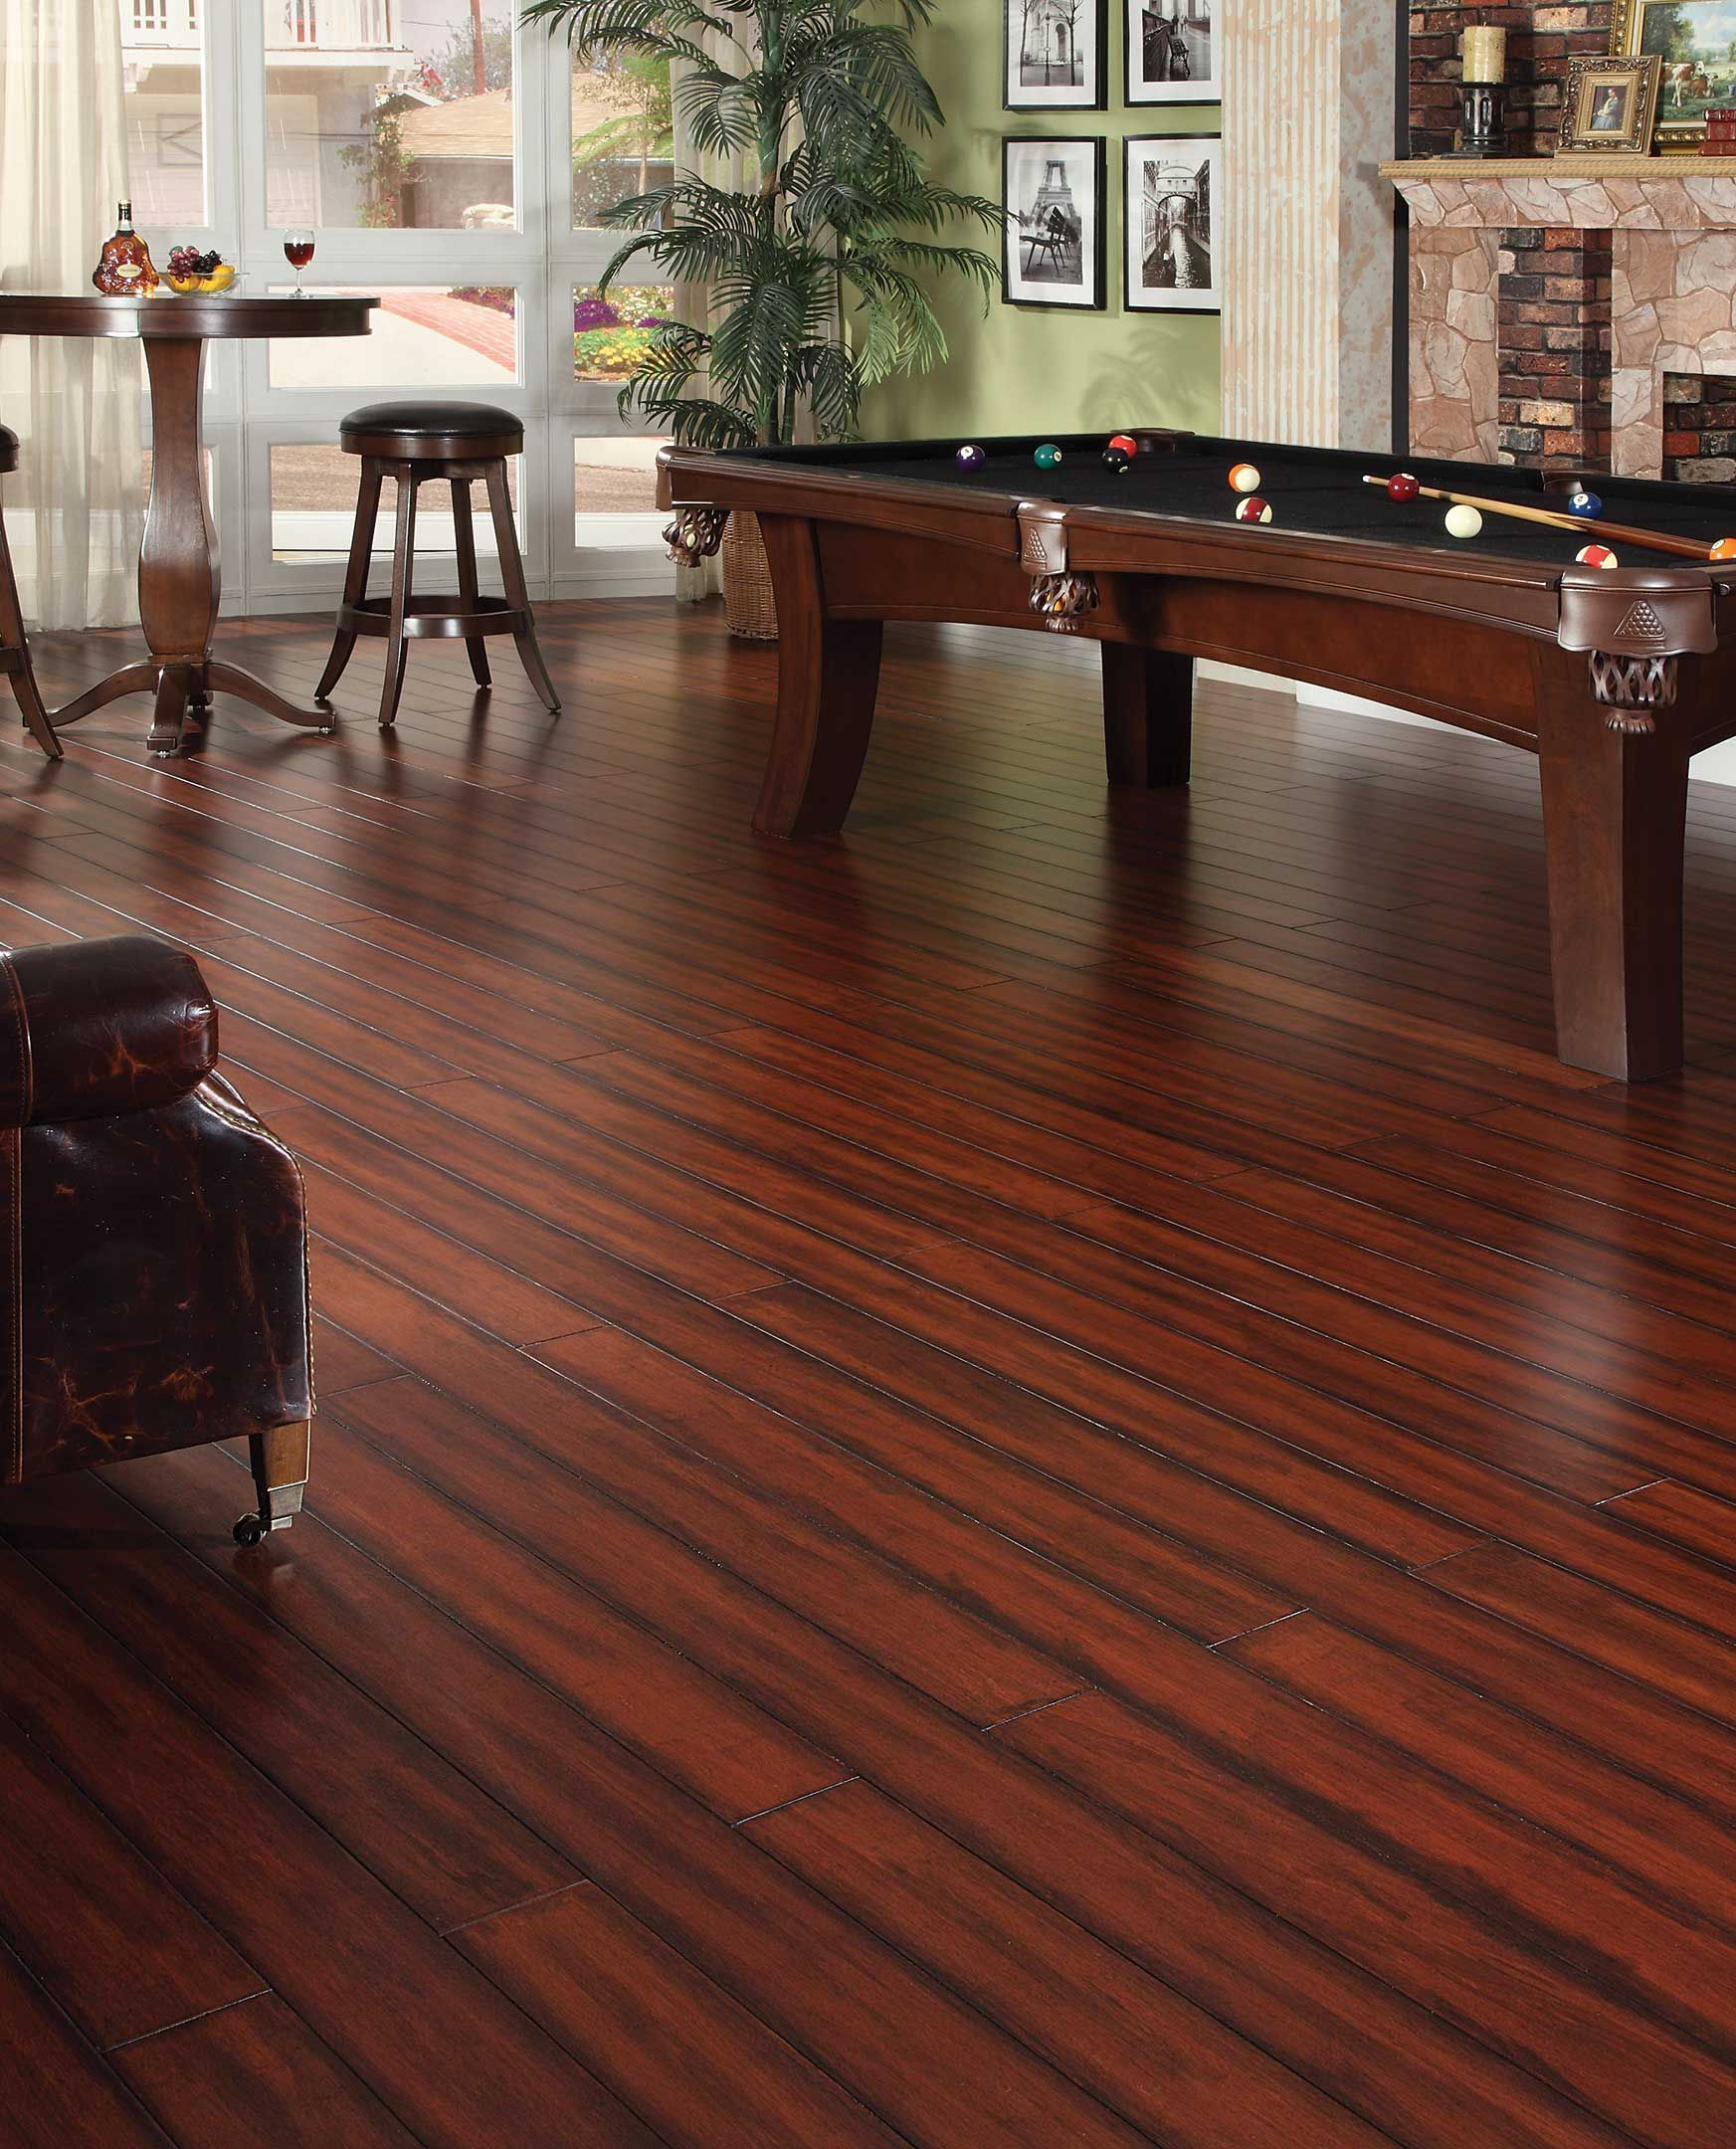 Great bamboo flooring suggestions this is a great idea for any